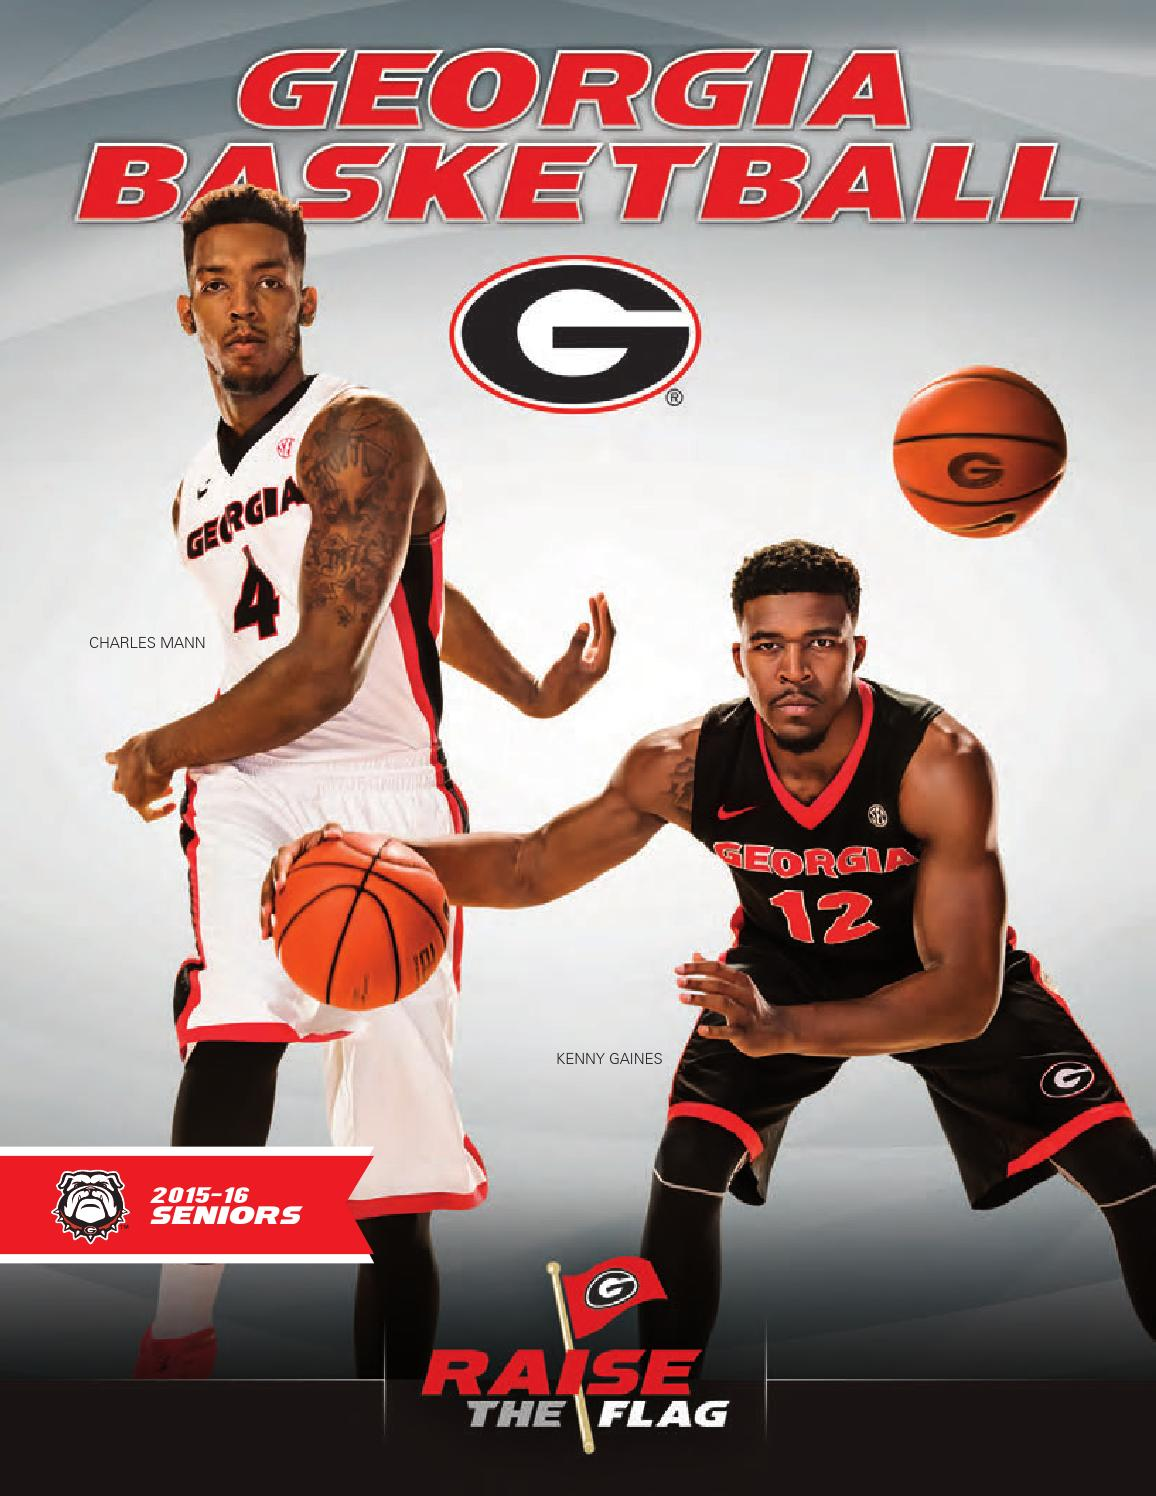 2015-16 Georgia Men's Basketball Media Guide by Georgia Bulldogs Athletics  - issuu